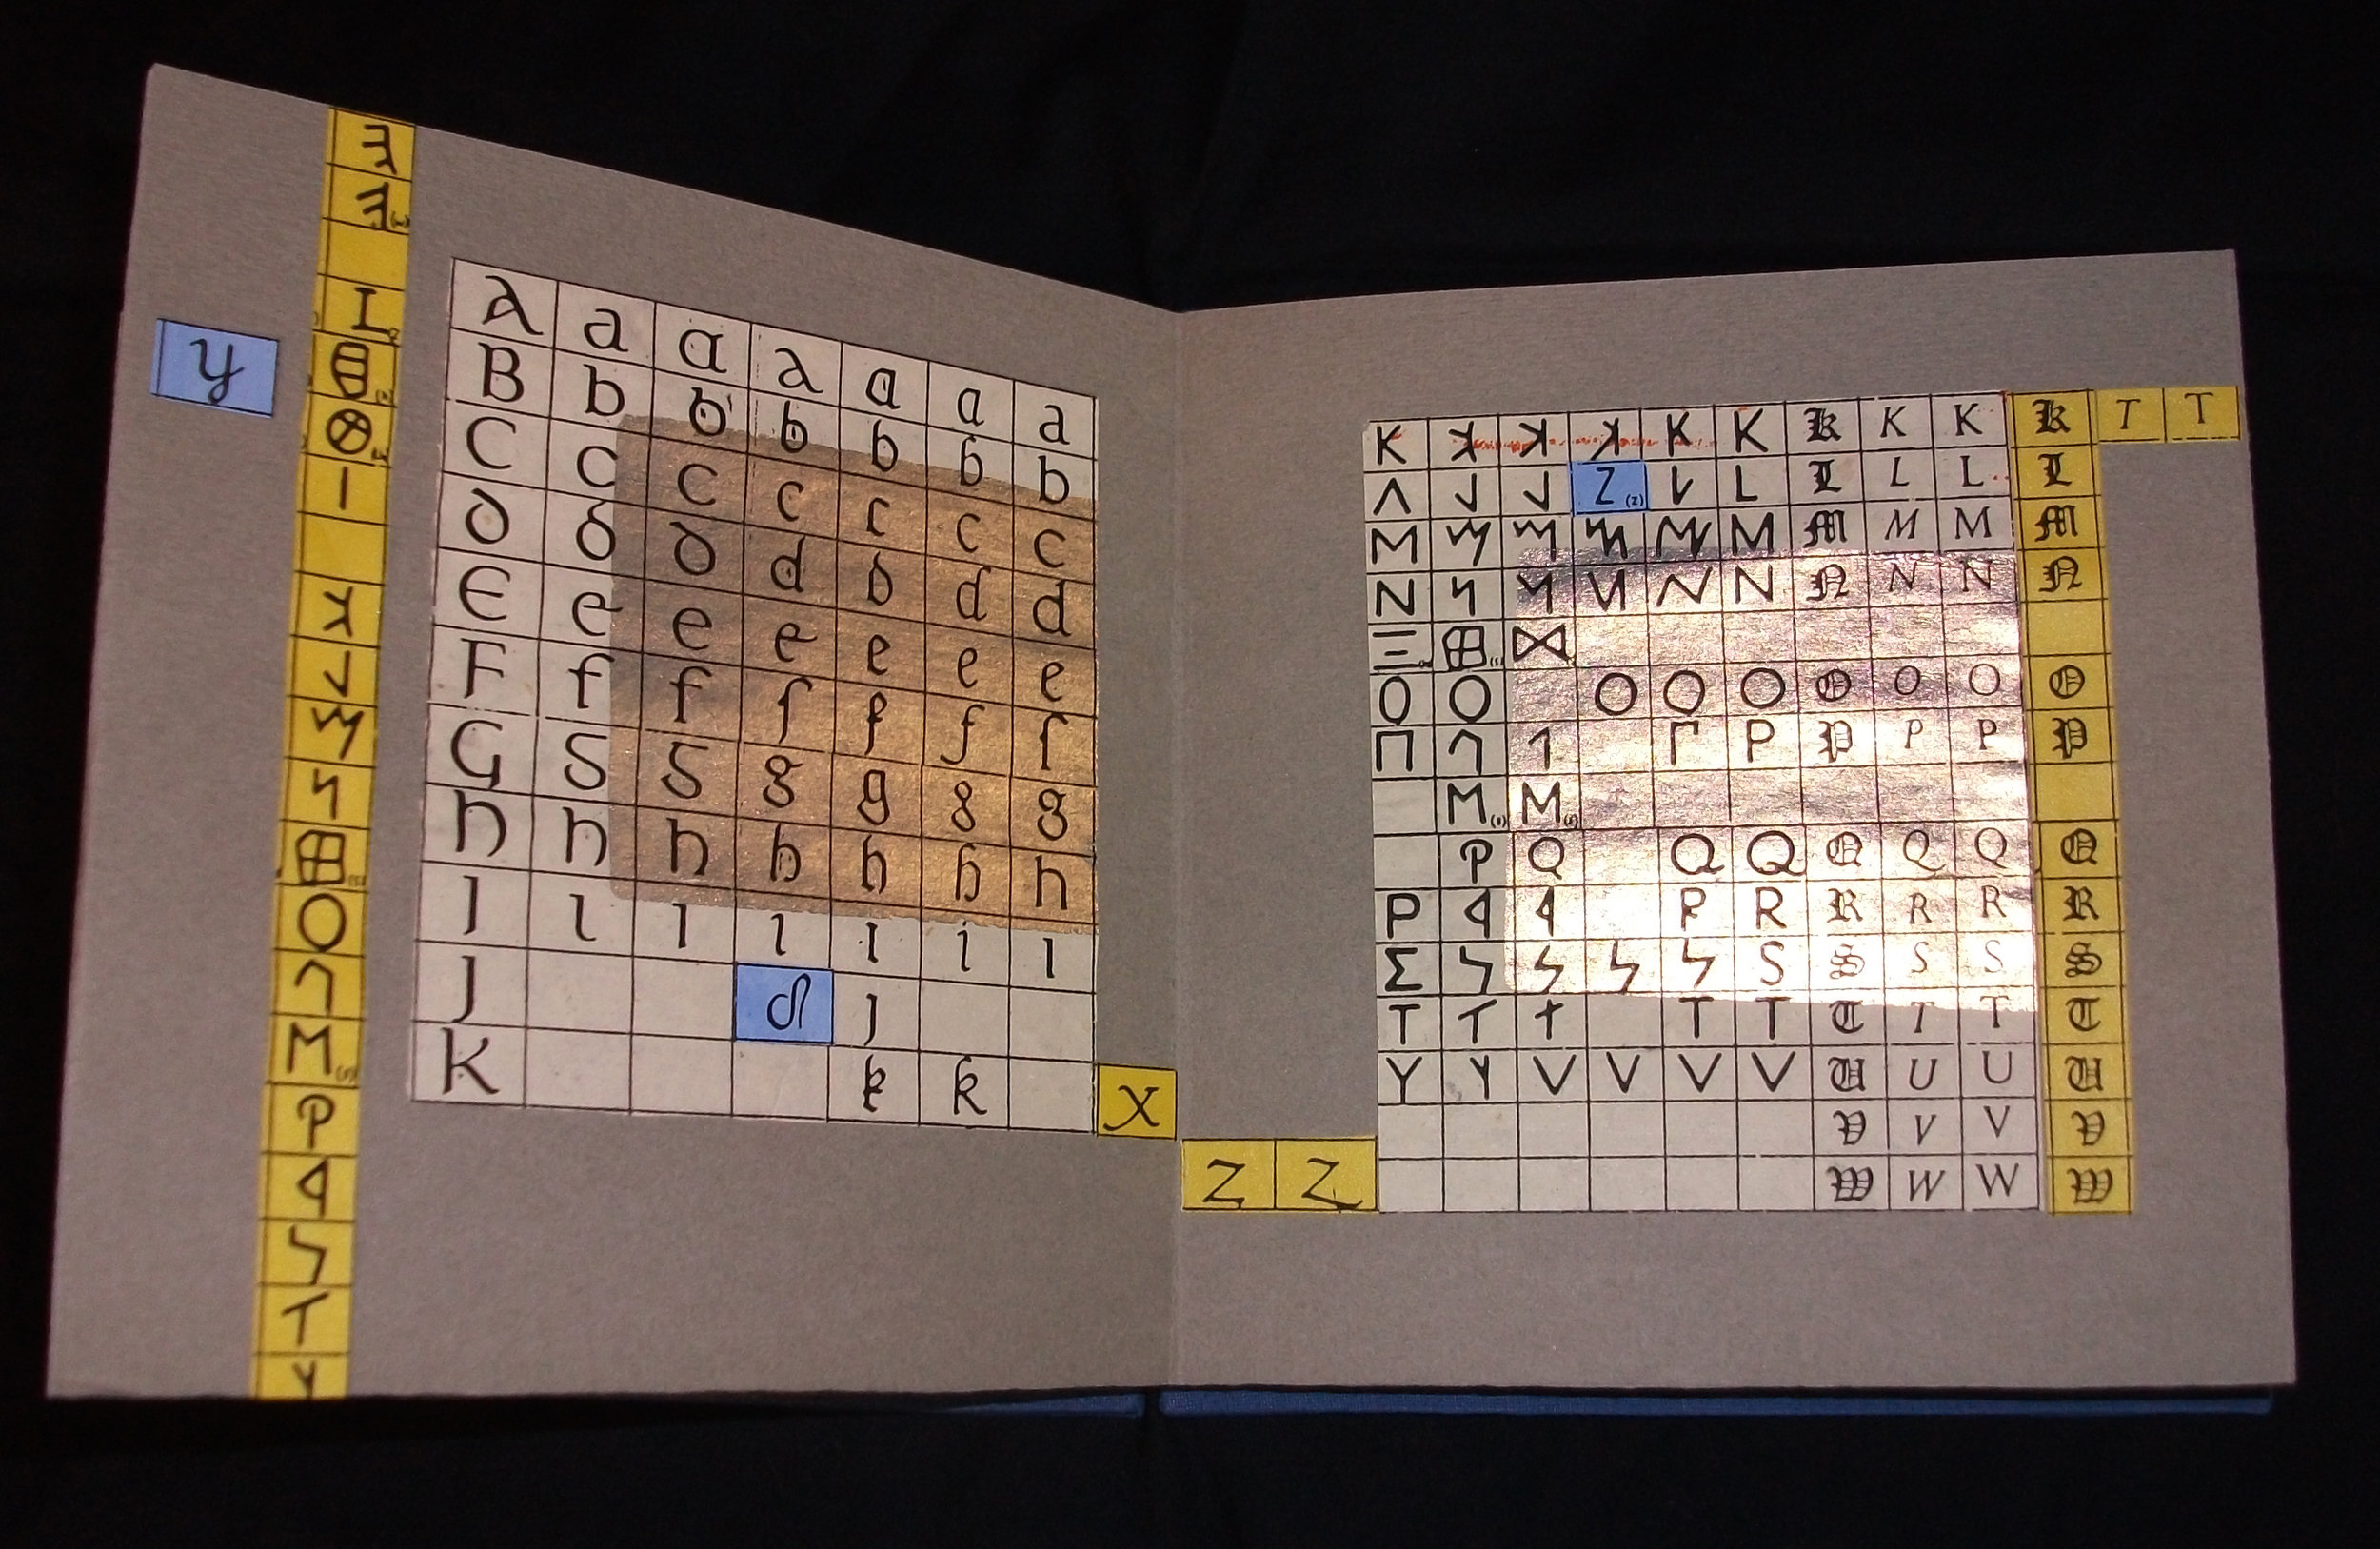 Evelyn Eller,  More Alphabets,  Unique Mixed Media Artist Book, 2009, New York, NY